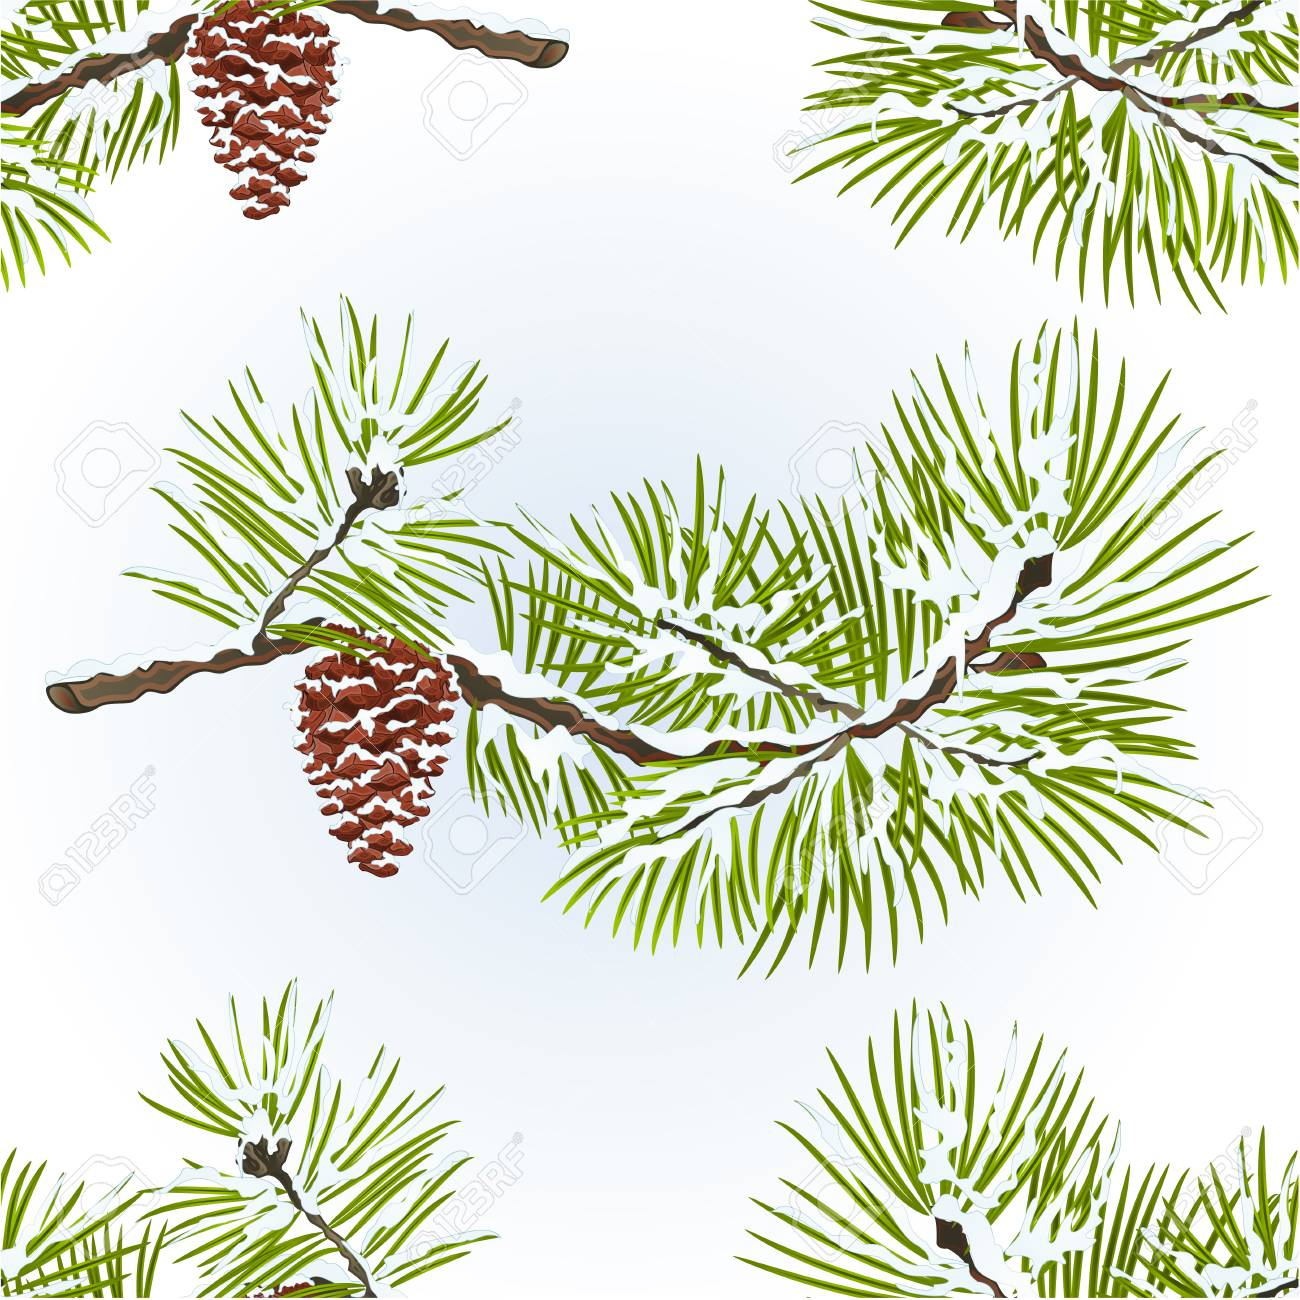 Pinecone clipart natural form. Free pine cone download